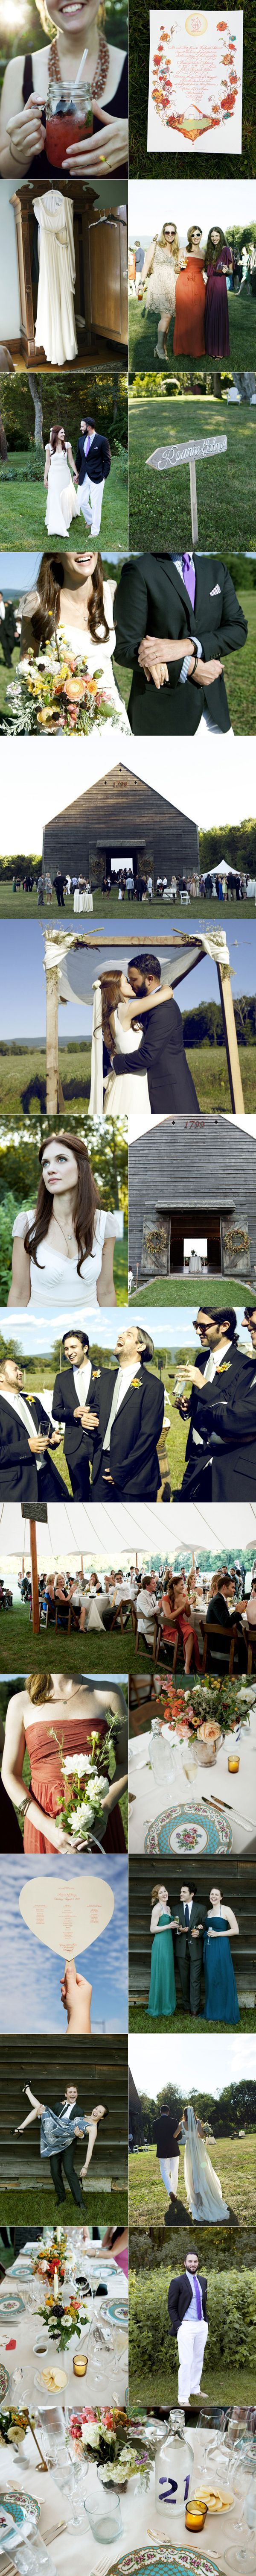 Sweet New York Farm Wedding